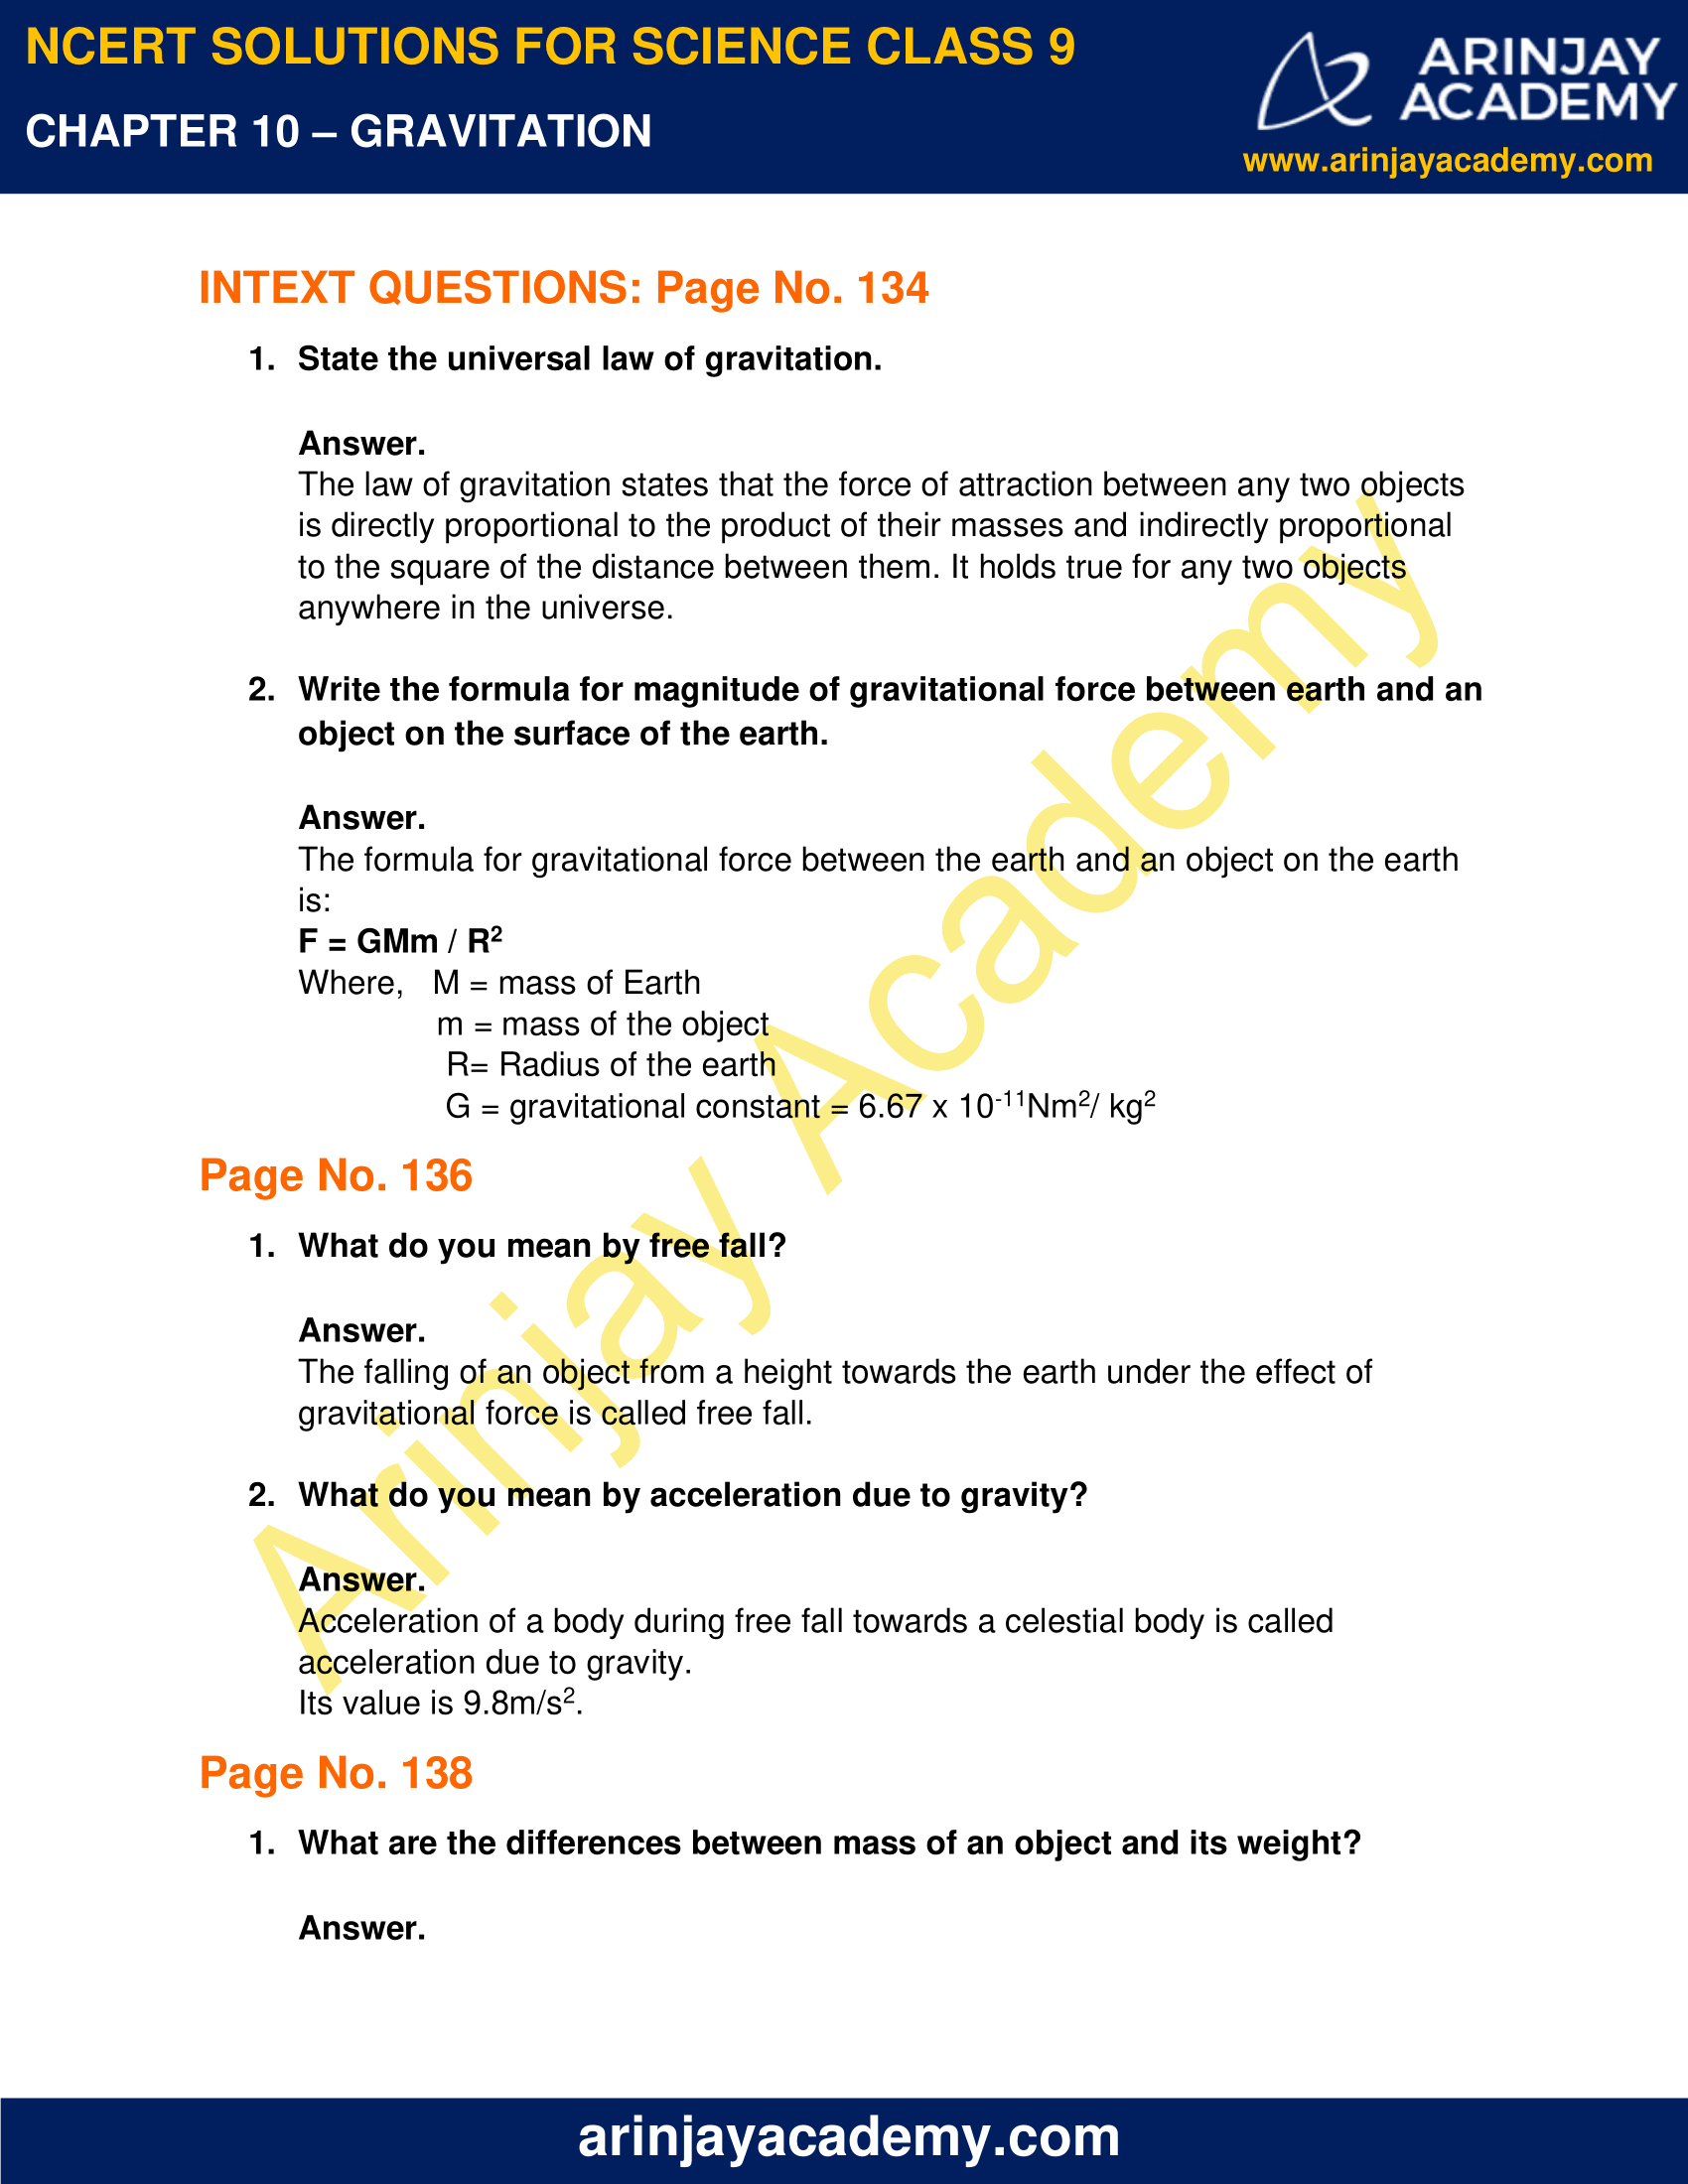 NCERT Solutions for Class 9 Science Chapter 10 Gravitation image 1